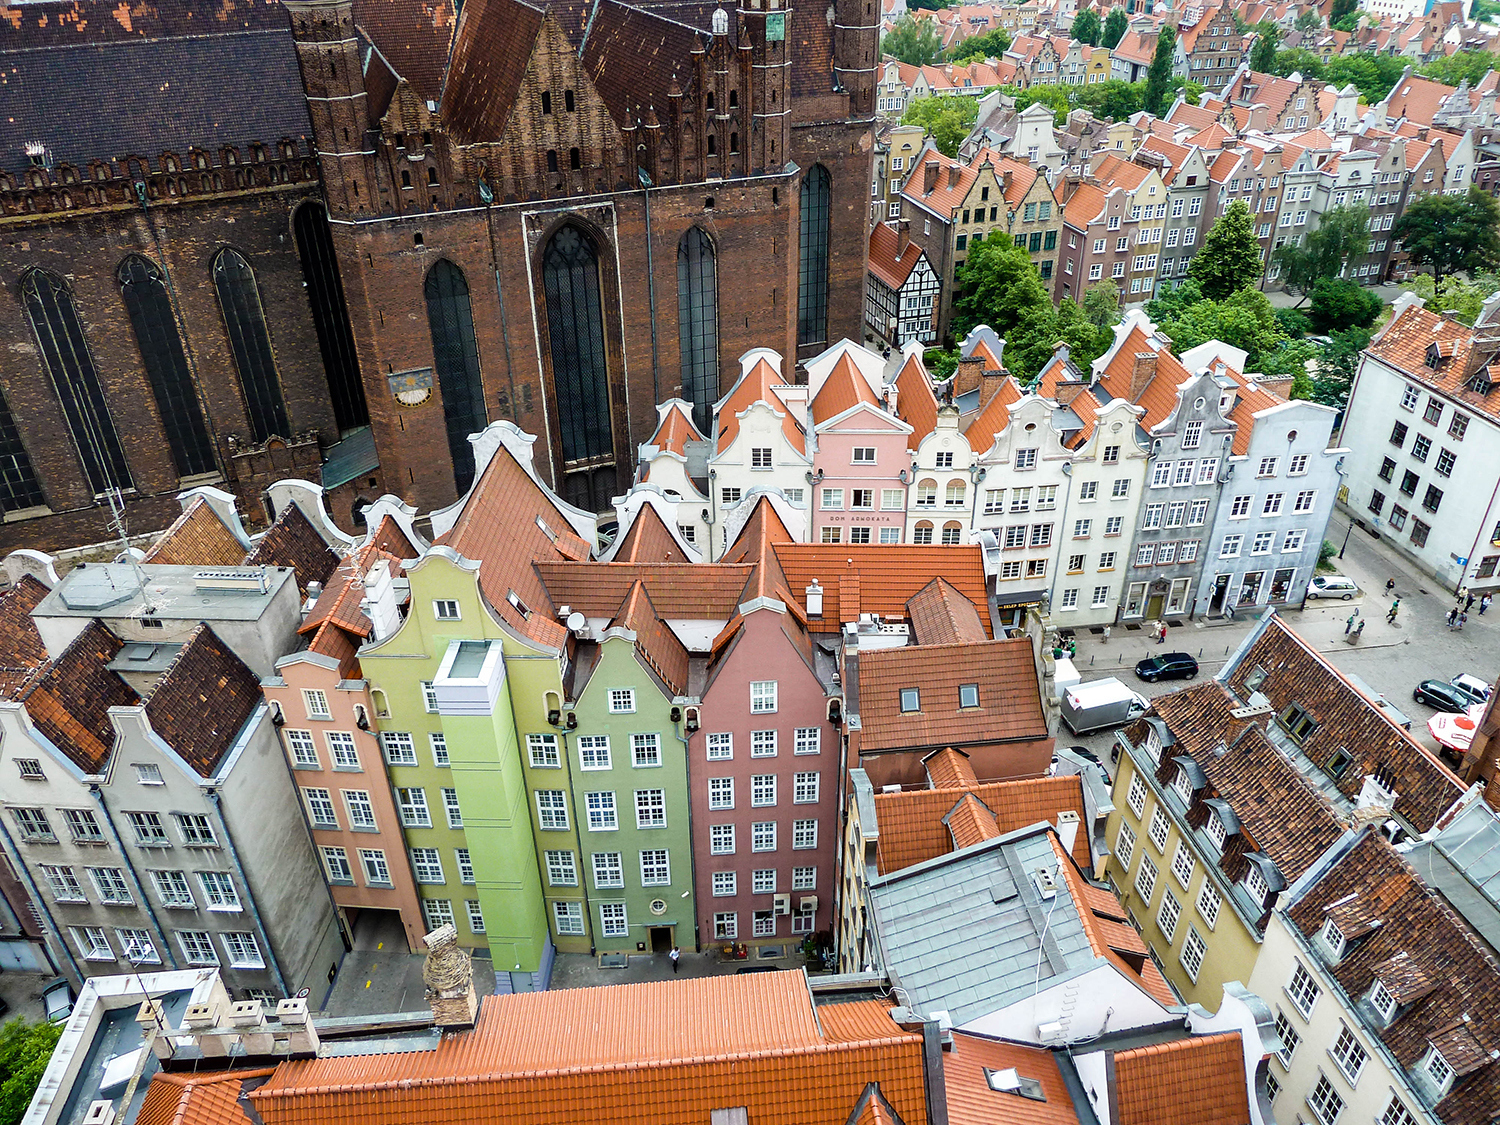 <p>From the perspective of the Town Hall's tower, Gdansk's historic centre almost appears to be made up of toy houses.<br /></p>